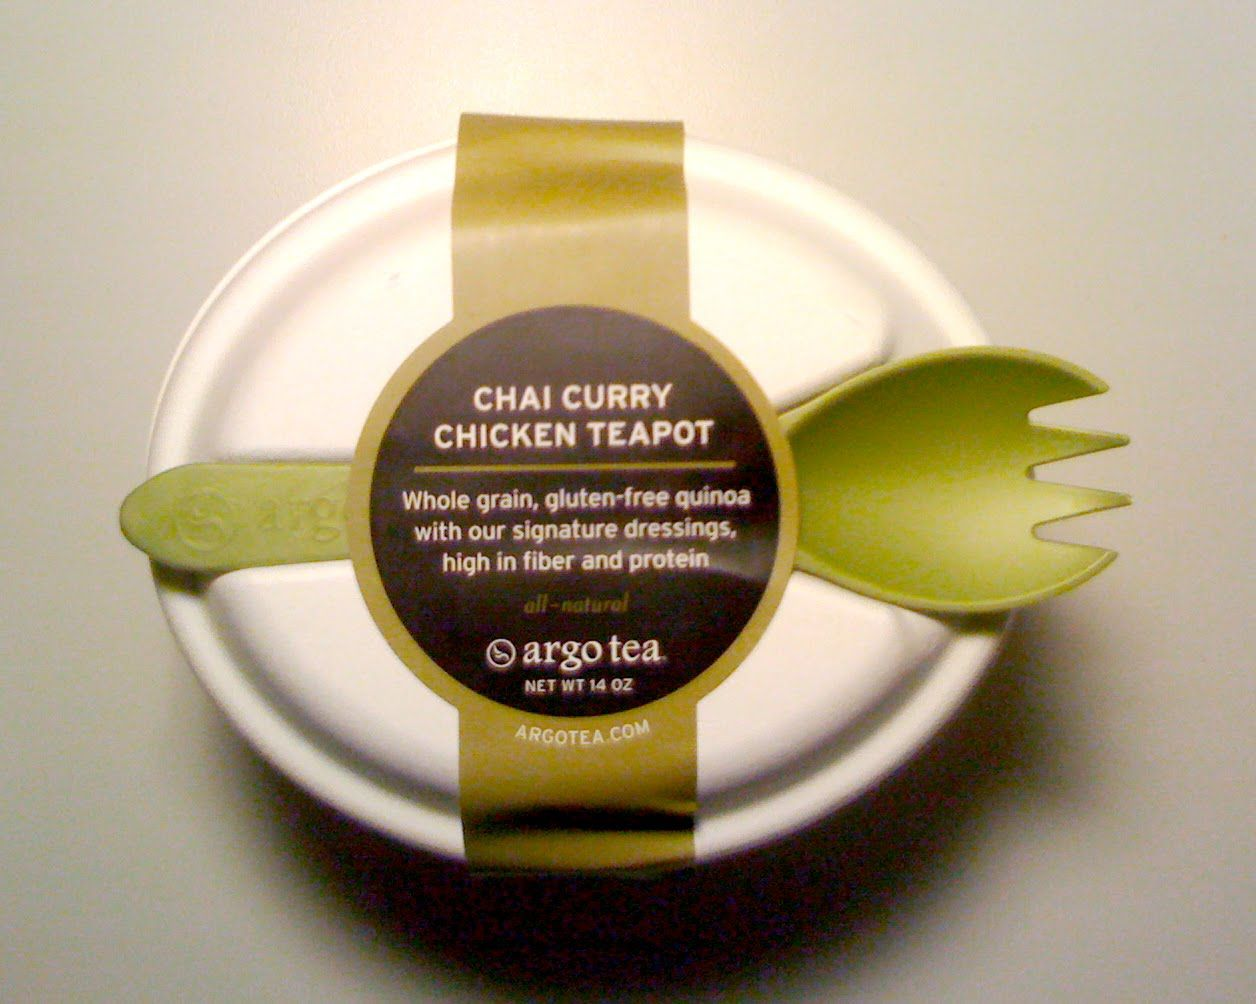 argo tea 39 s chai curry chicken teapot is the perfect meal. Black Bedroom Furniture Sets. Home Design Ideas